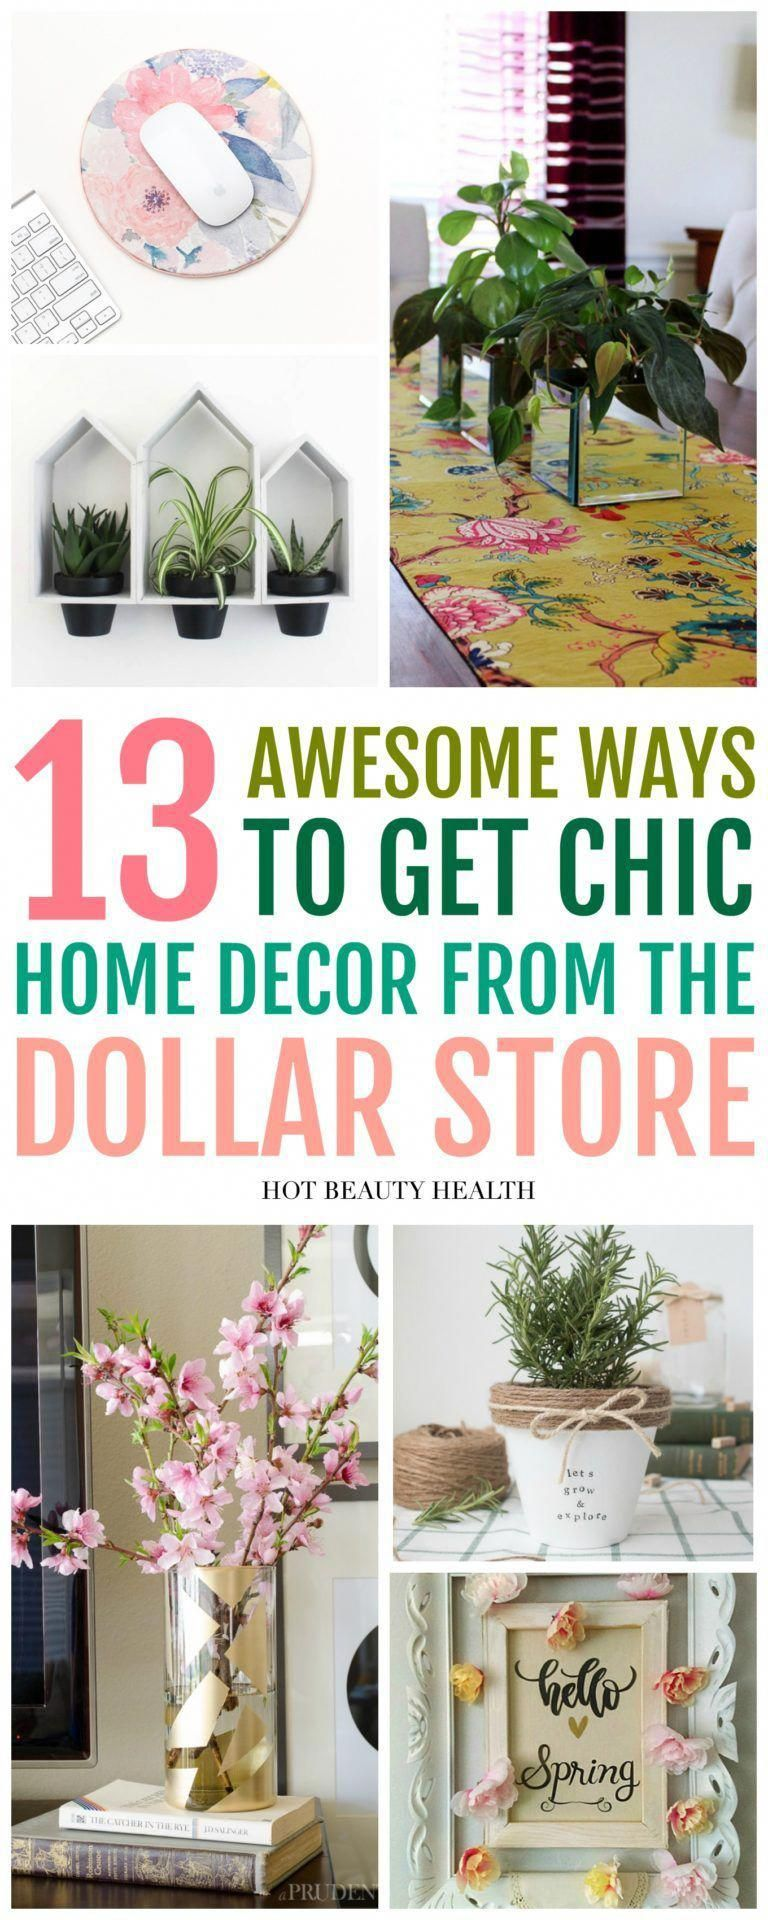 These diy dollar store home decor ideas are super creative parents that budgeting would love cheap ways to redecorate their house also best images in rh pinterest